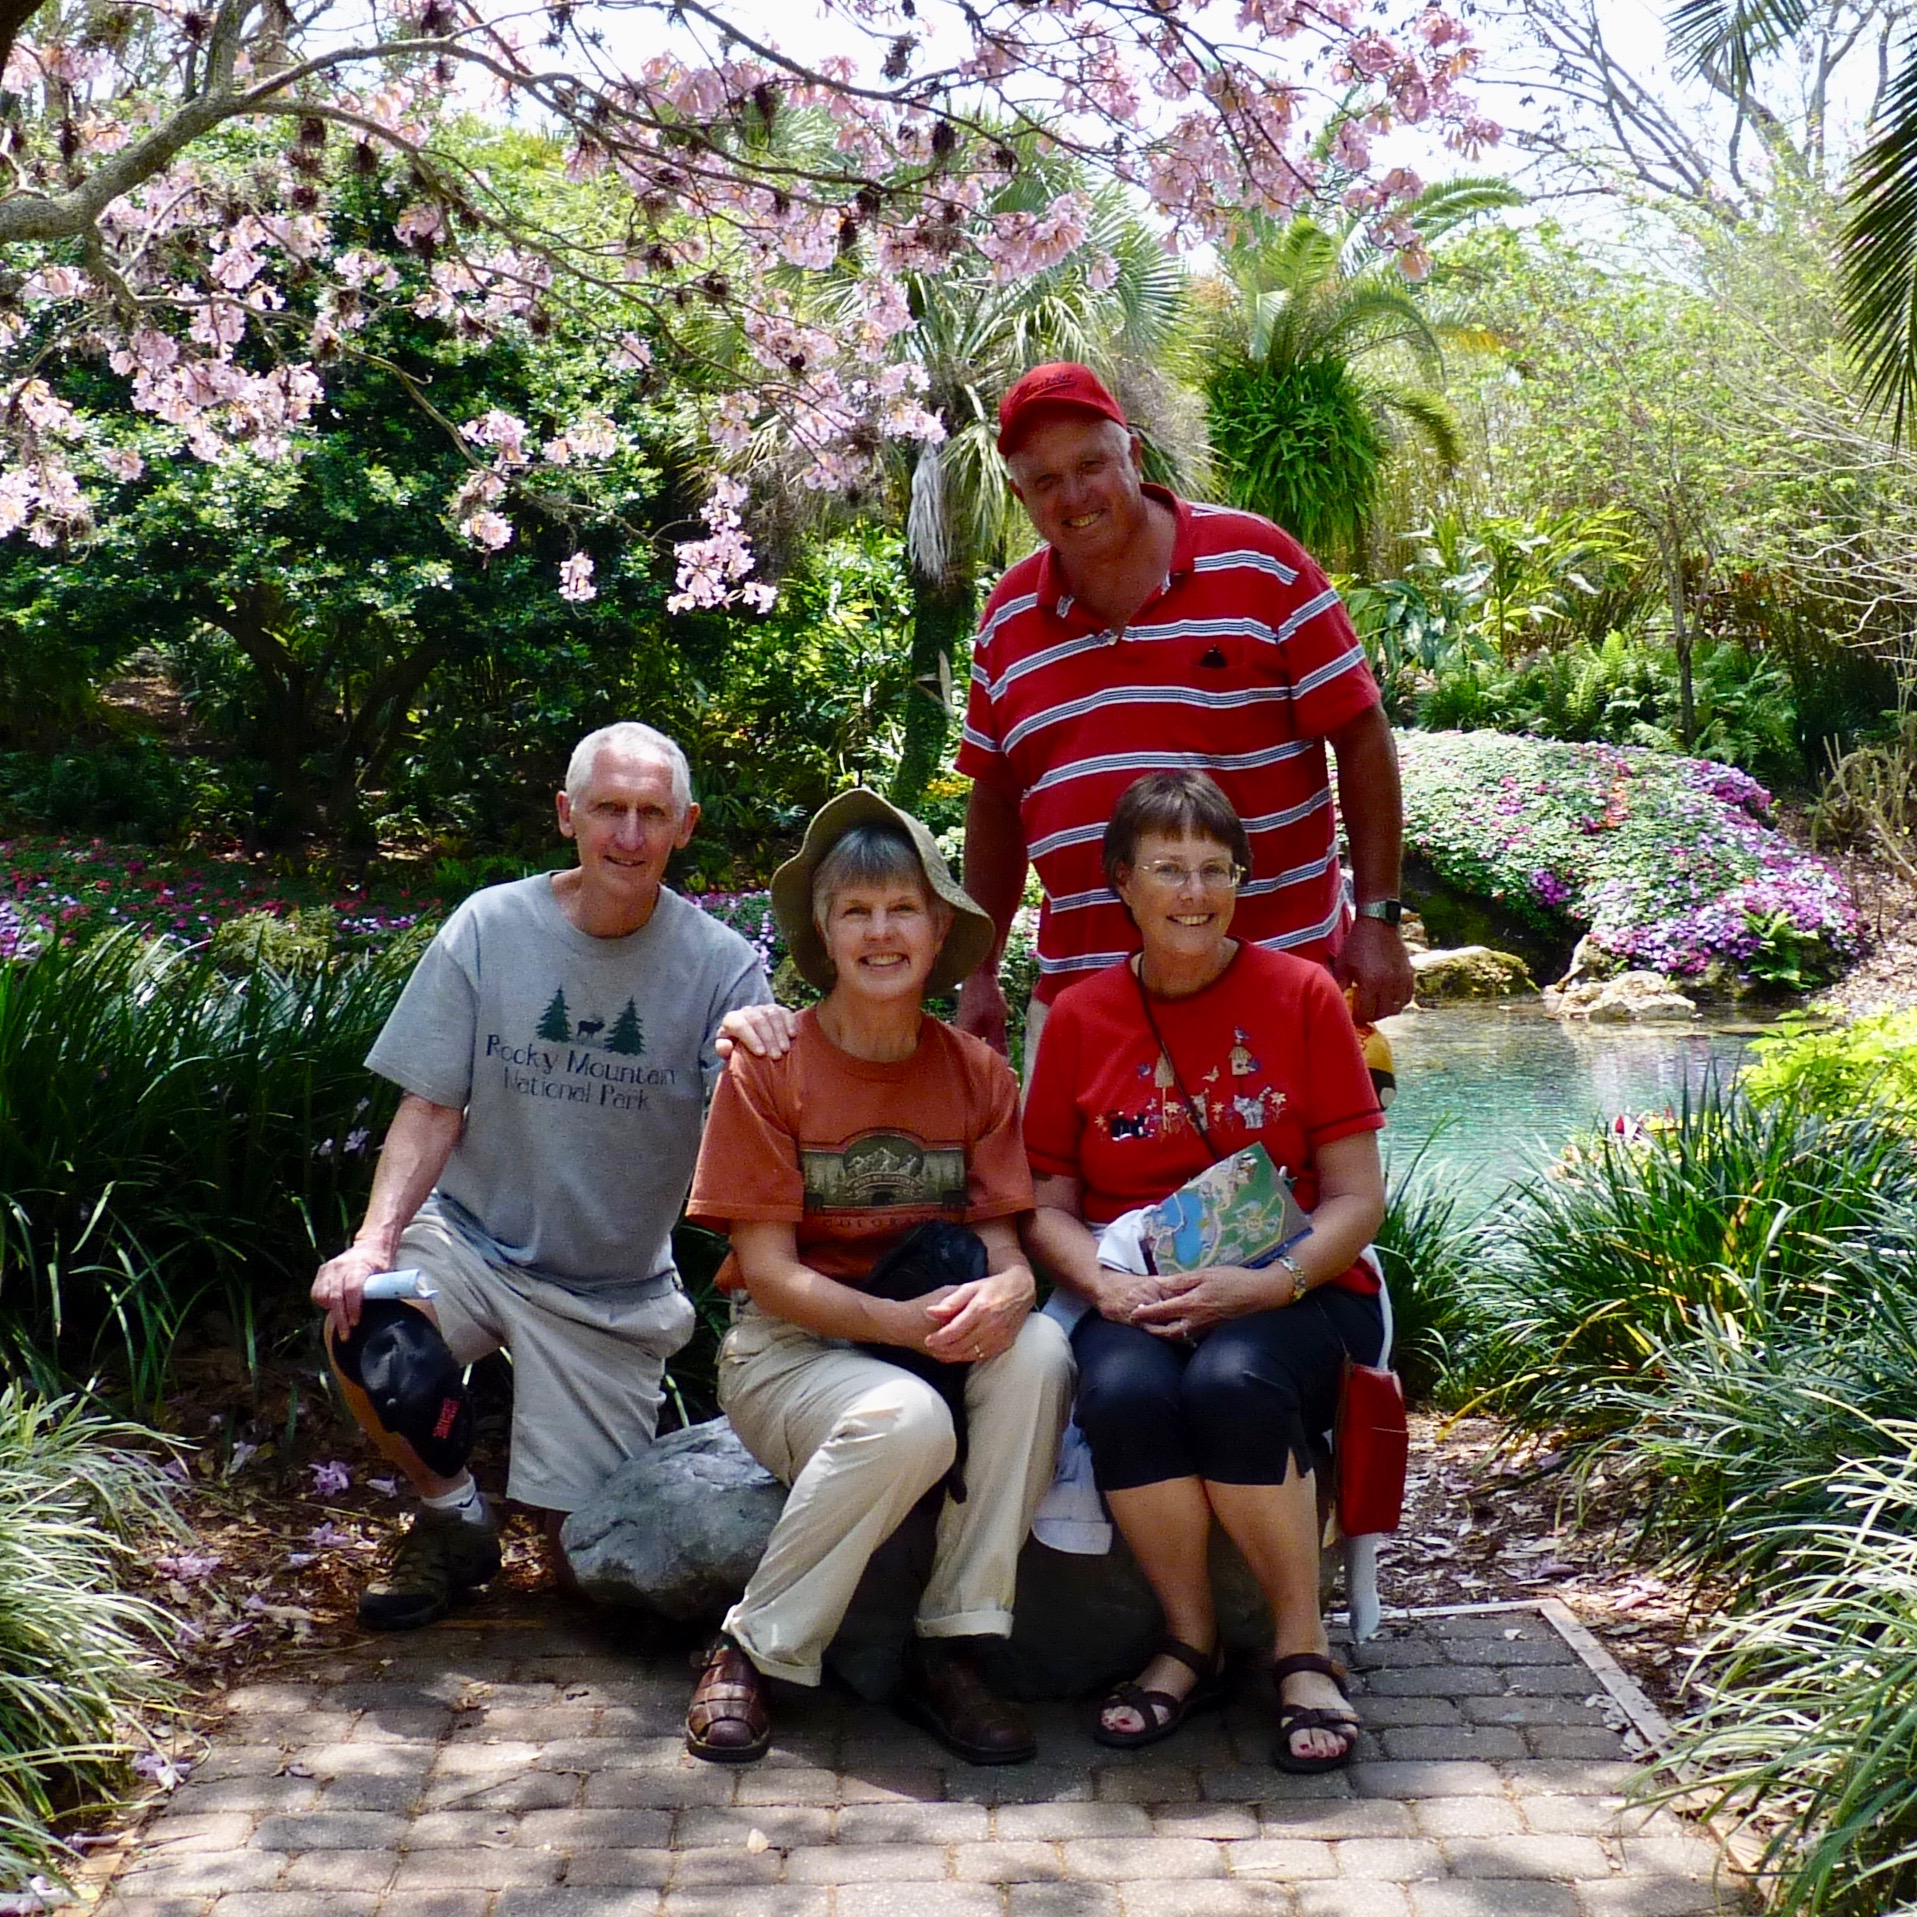 Here's Art on a beautiful Florida day at Sea World with Jim, Gini, and Diane.  A precious memory.